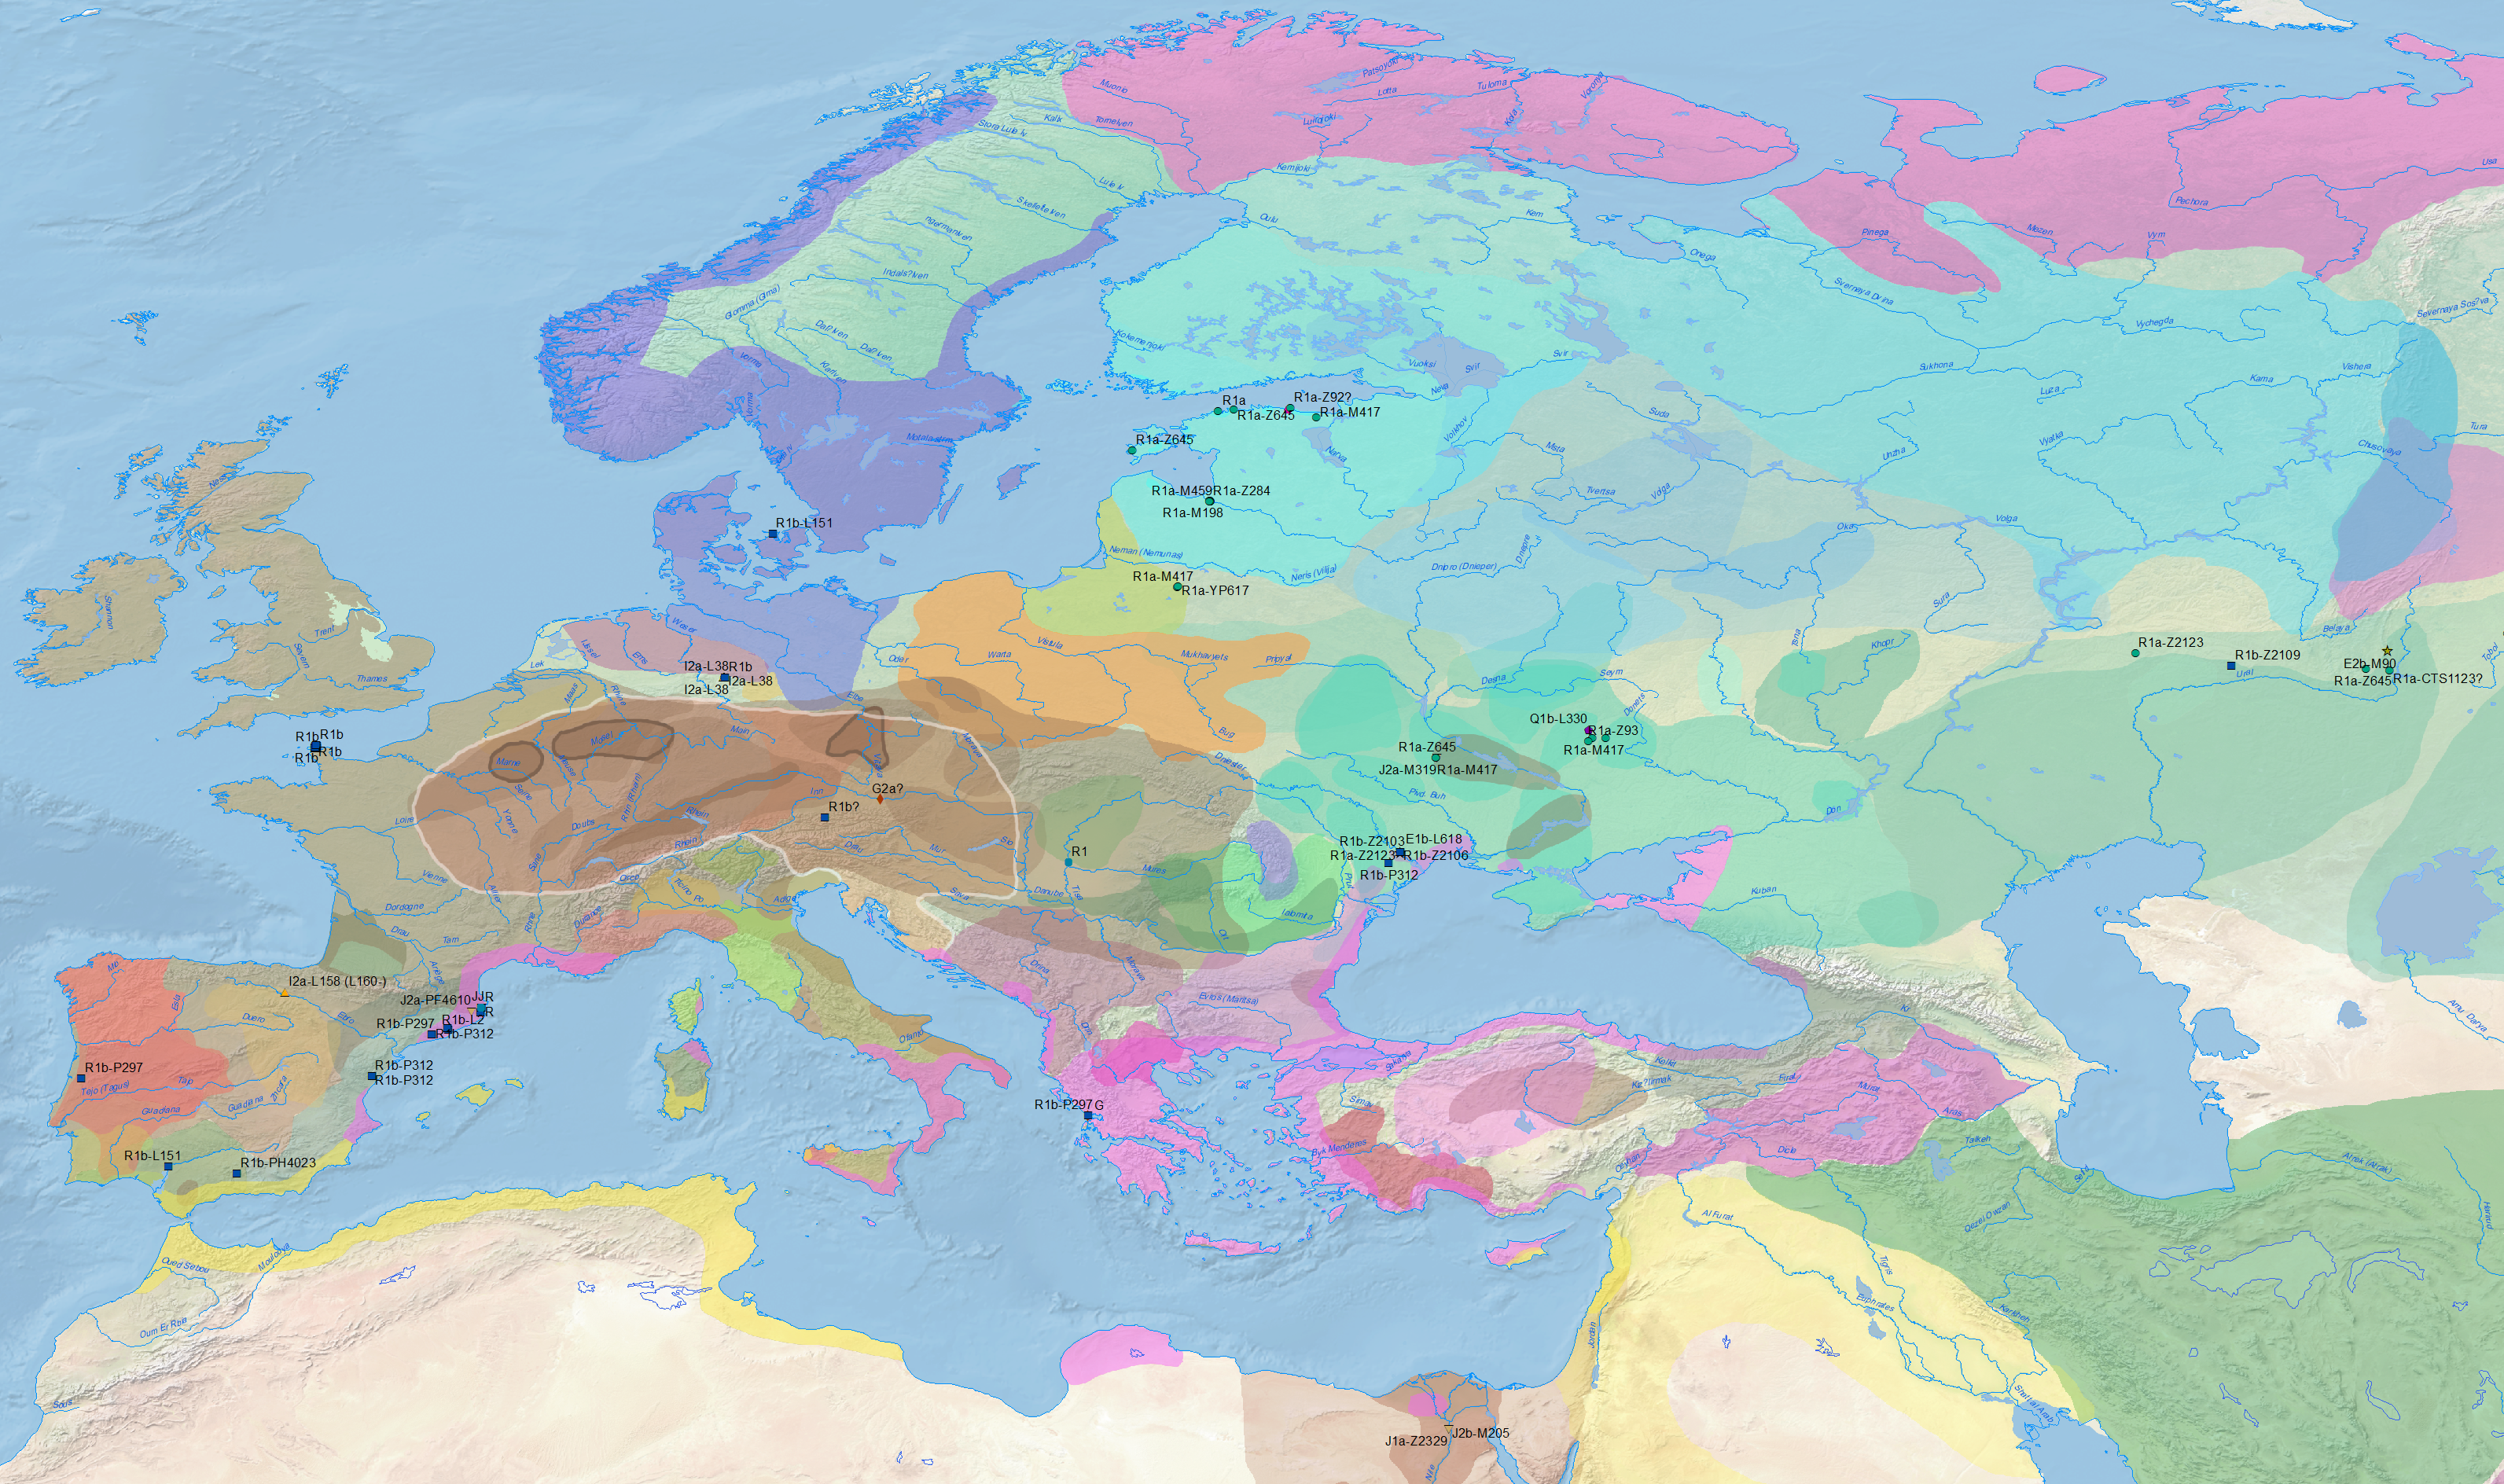 Early Iron Age – Indo-European.eu on dna map of east asia, viking expansion in europe, autosomal dna europe, fortress europe, jewish dna map of europe, northwest europe, mtdna europe, dna map of the world, ethnic groups in europe, haplogroup map europe, ethnic map europe, migration to europe, celtic dna in europe, i1 dna oldest in europe, slavic europe, migration in europe, dna of ashkenazi jews, east and west europe, early migration europe, asian dna in europe,